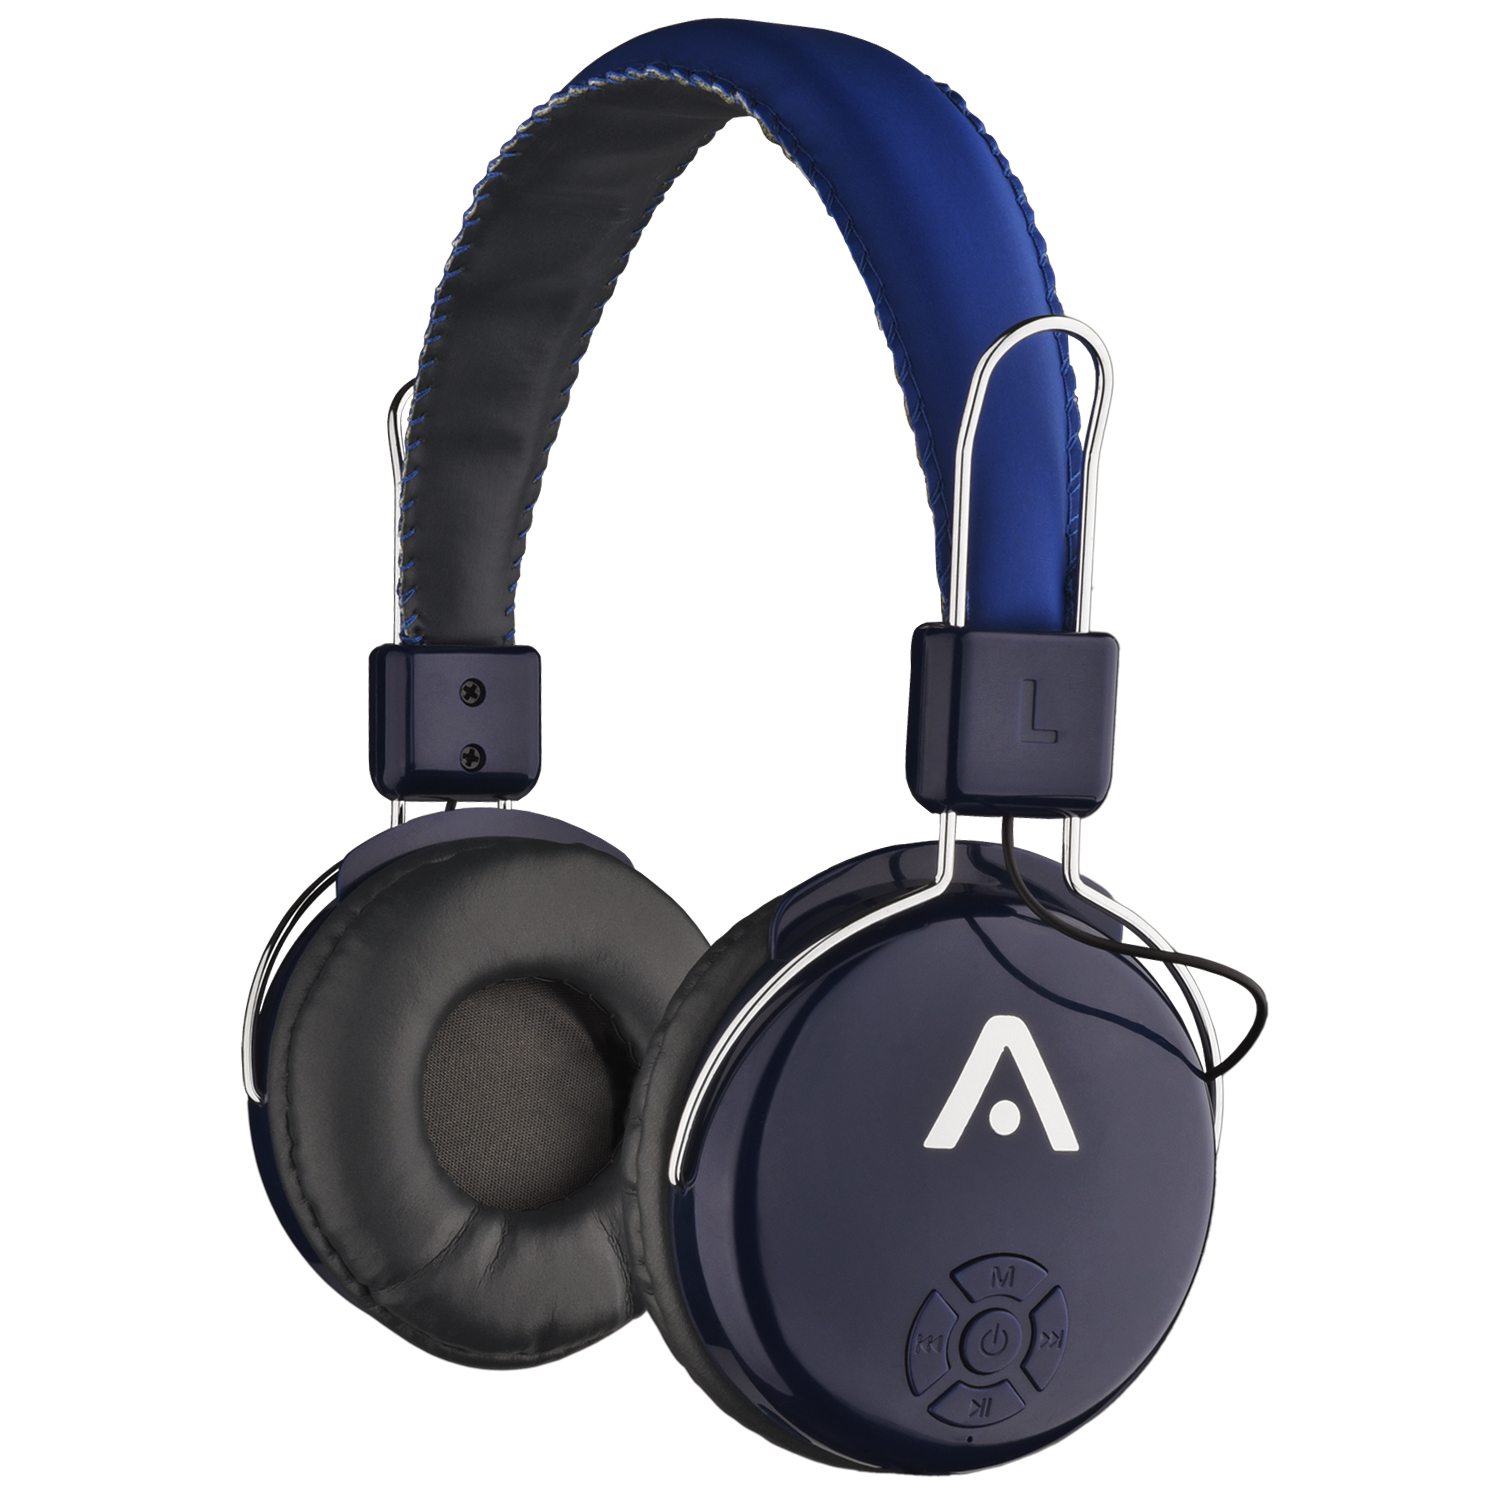 Image for Audiomate A21 Wireless Bluetooth Headphones - Black / Blue from Circuit City